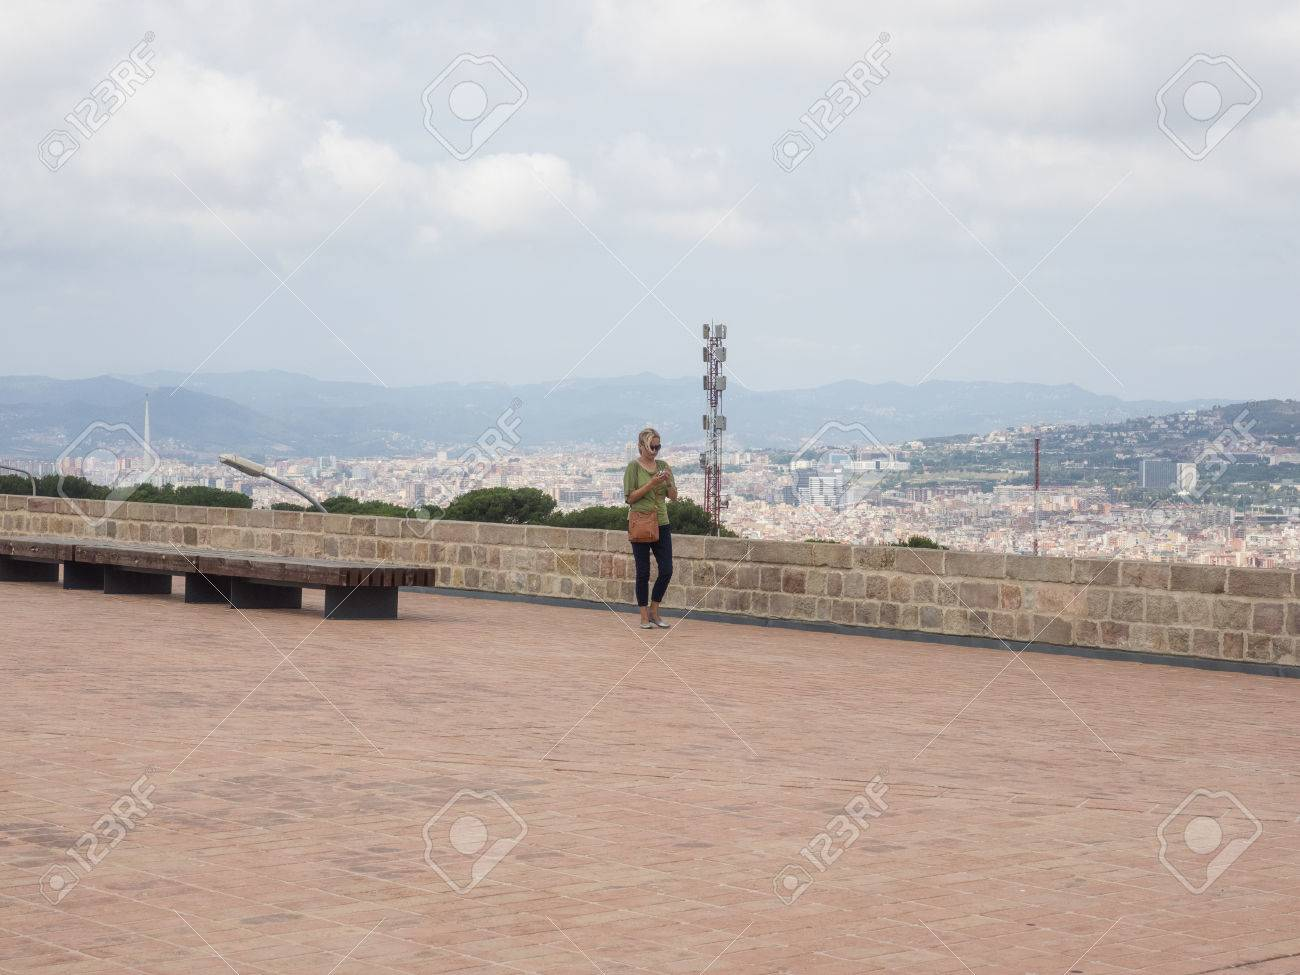 Superb Montjuïc Castle Is An Old Military Fortress Built On Top Of Montjuïc Hill In  Barcelona, Awesome Ideas